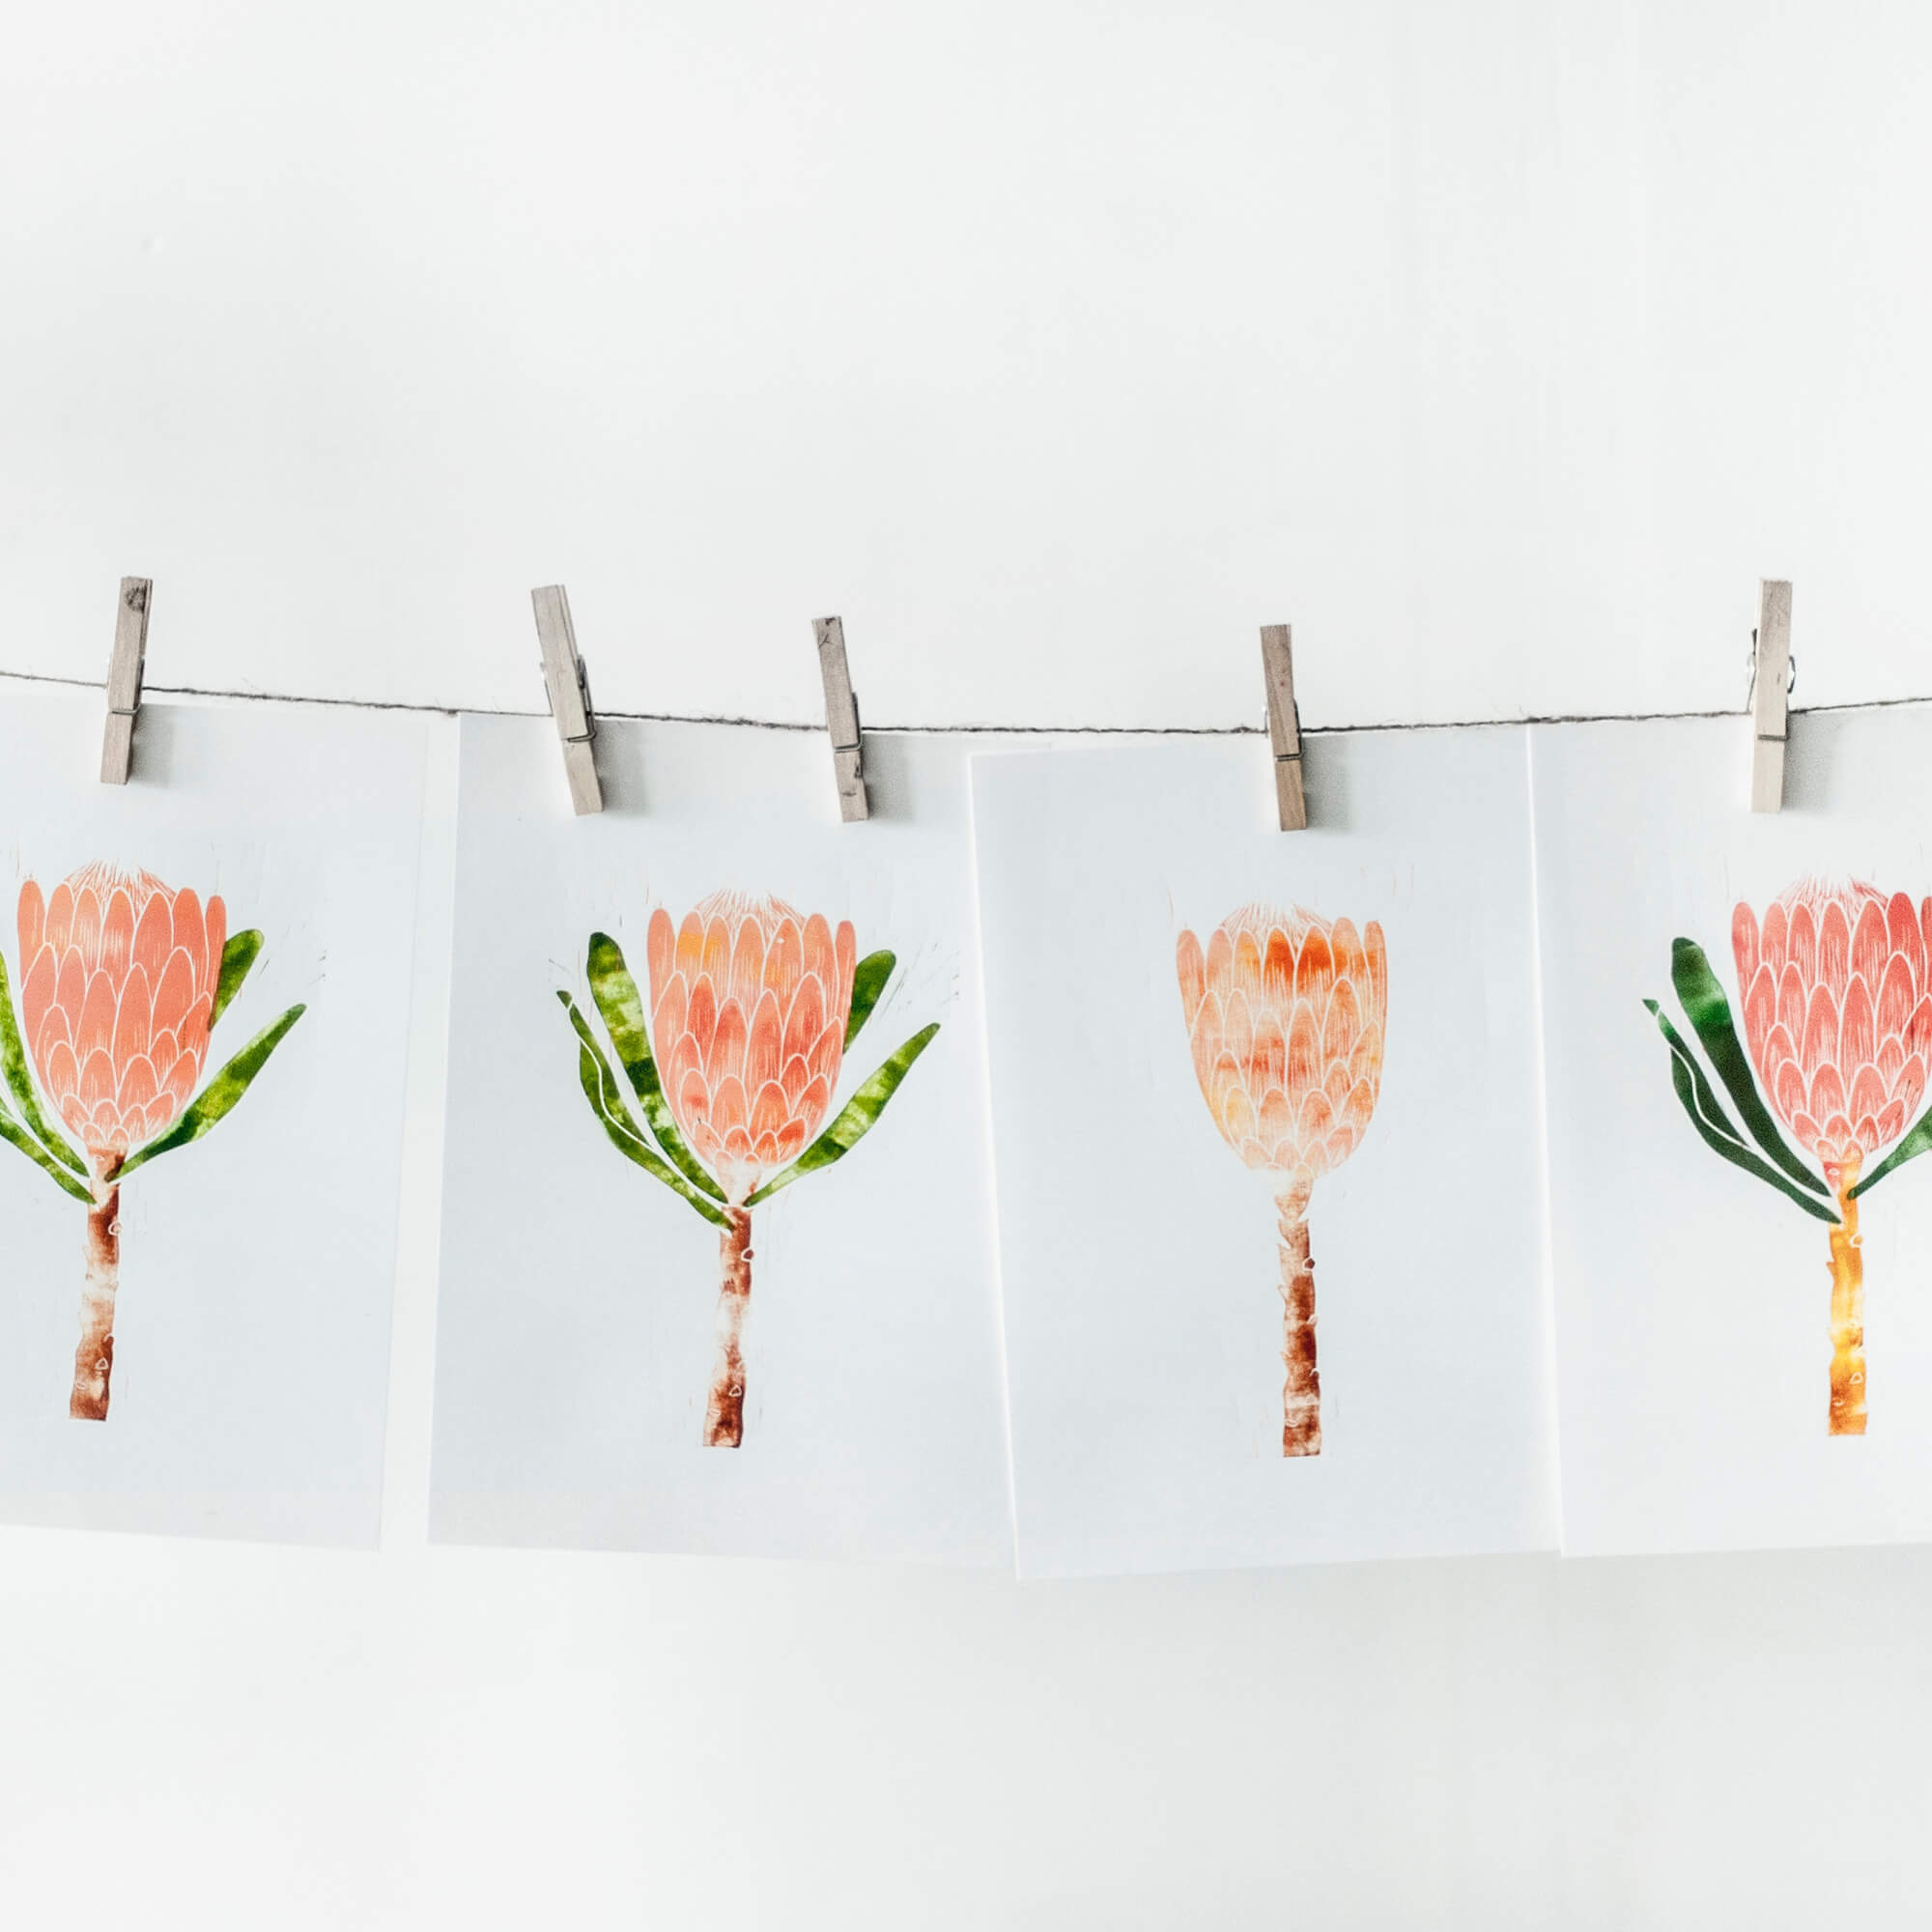 photos on a string with clothespins